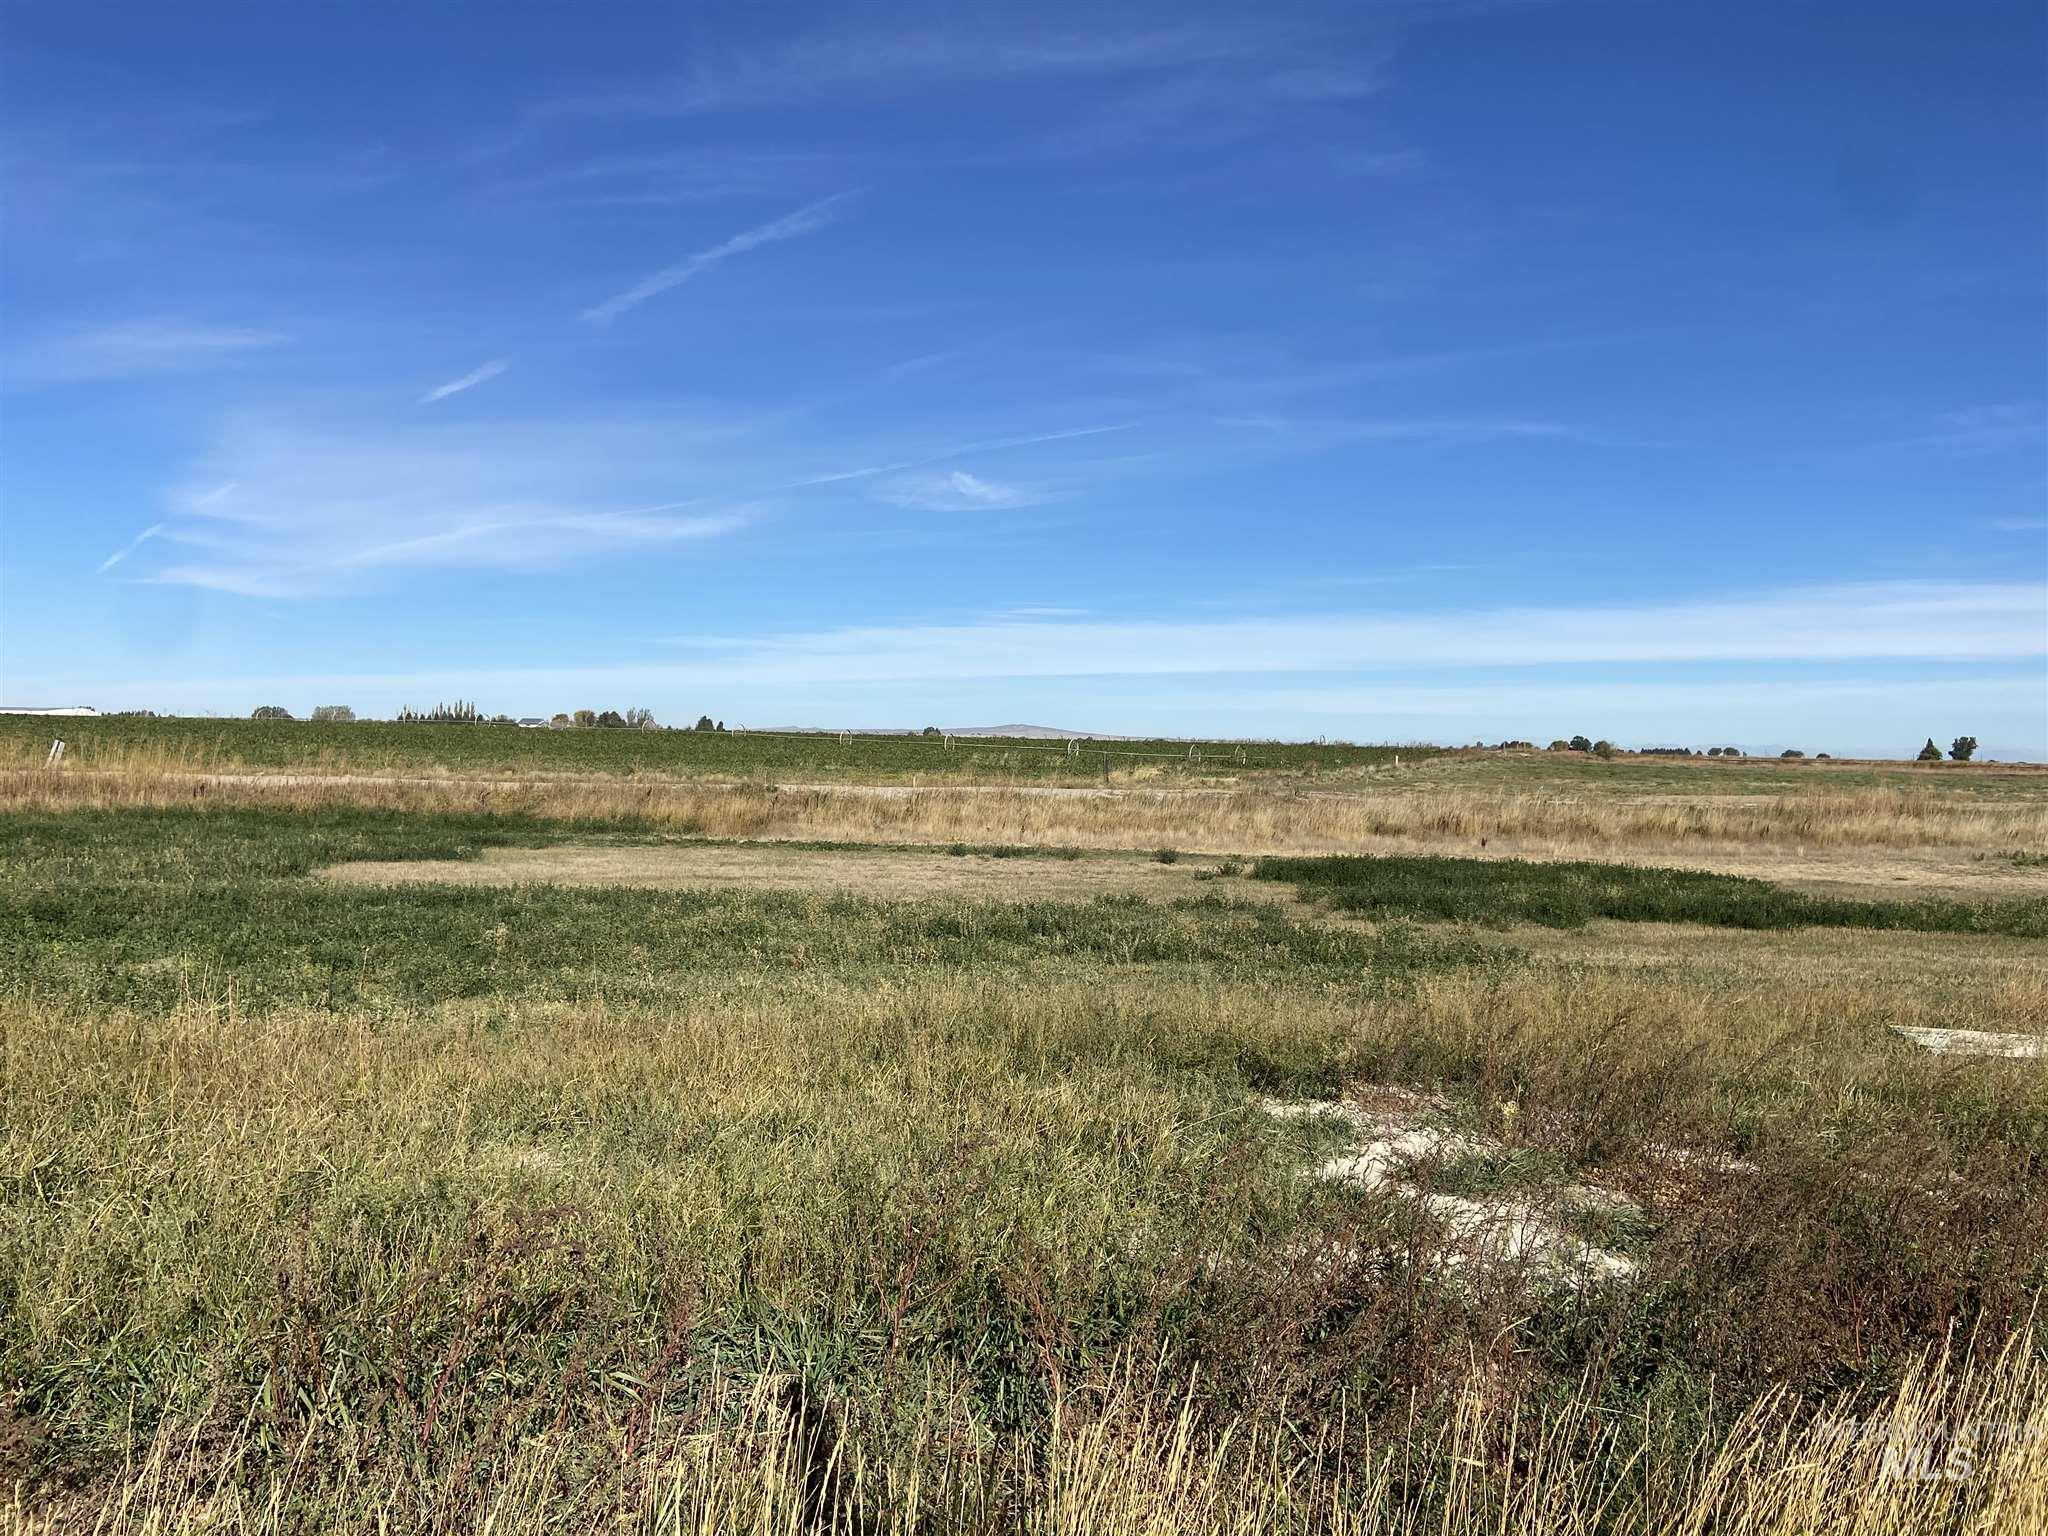 TBD W Clark Street, Paul, Idaho 83347, Land For Sale, Price $47,000, 98784401